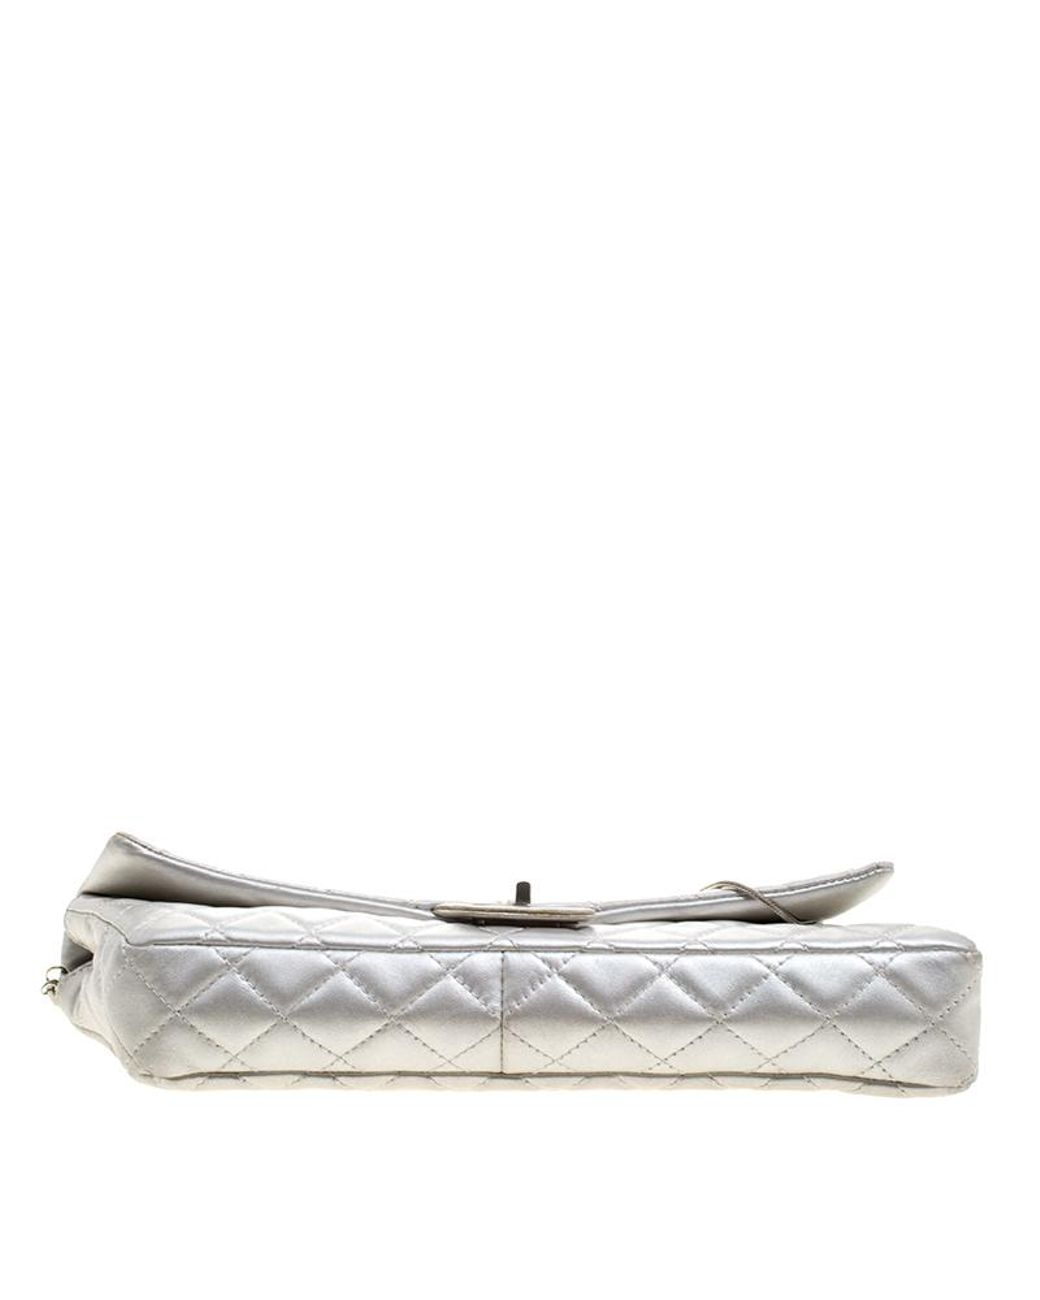 b868495f4d11 Chanel Silver Quilted Leather Reissue Chain Clutch in Metallic - Lyst